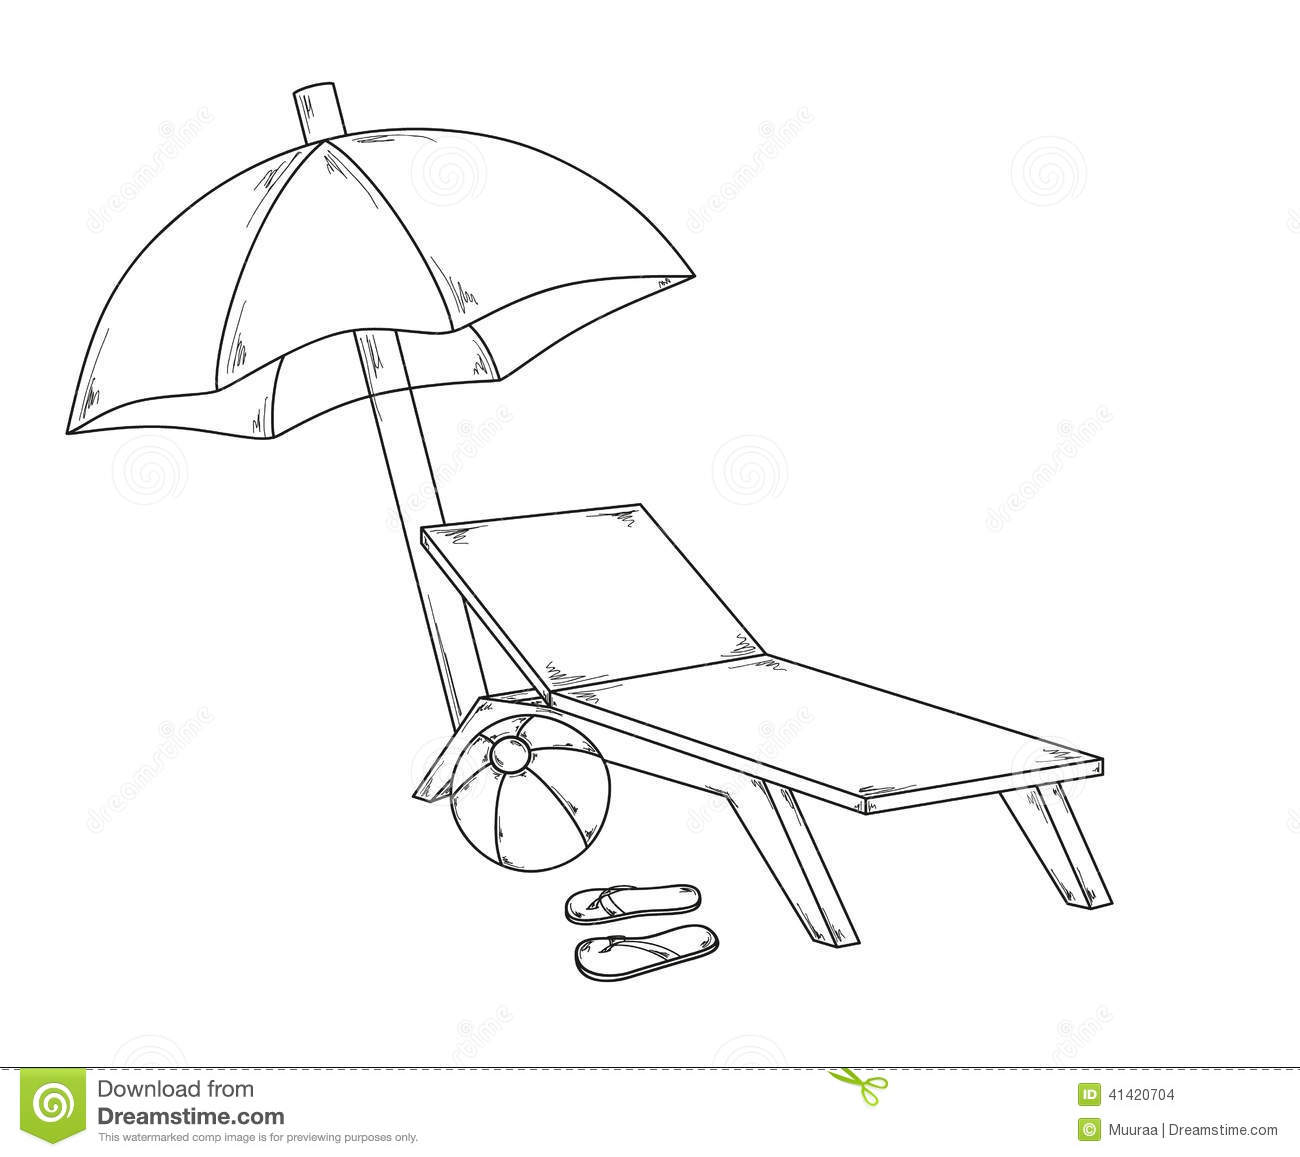 Beach chair and parasol vector illustration stock vector image - Parasol Flops Ball And Chair Stock Vector Image 41420704